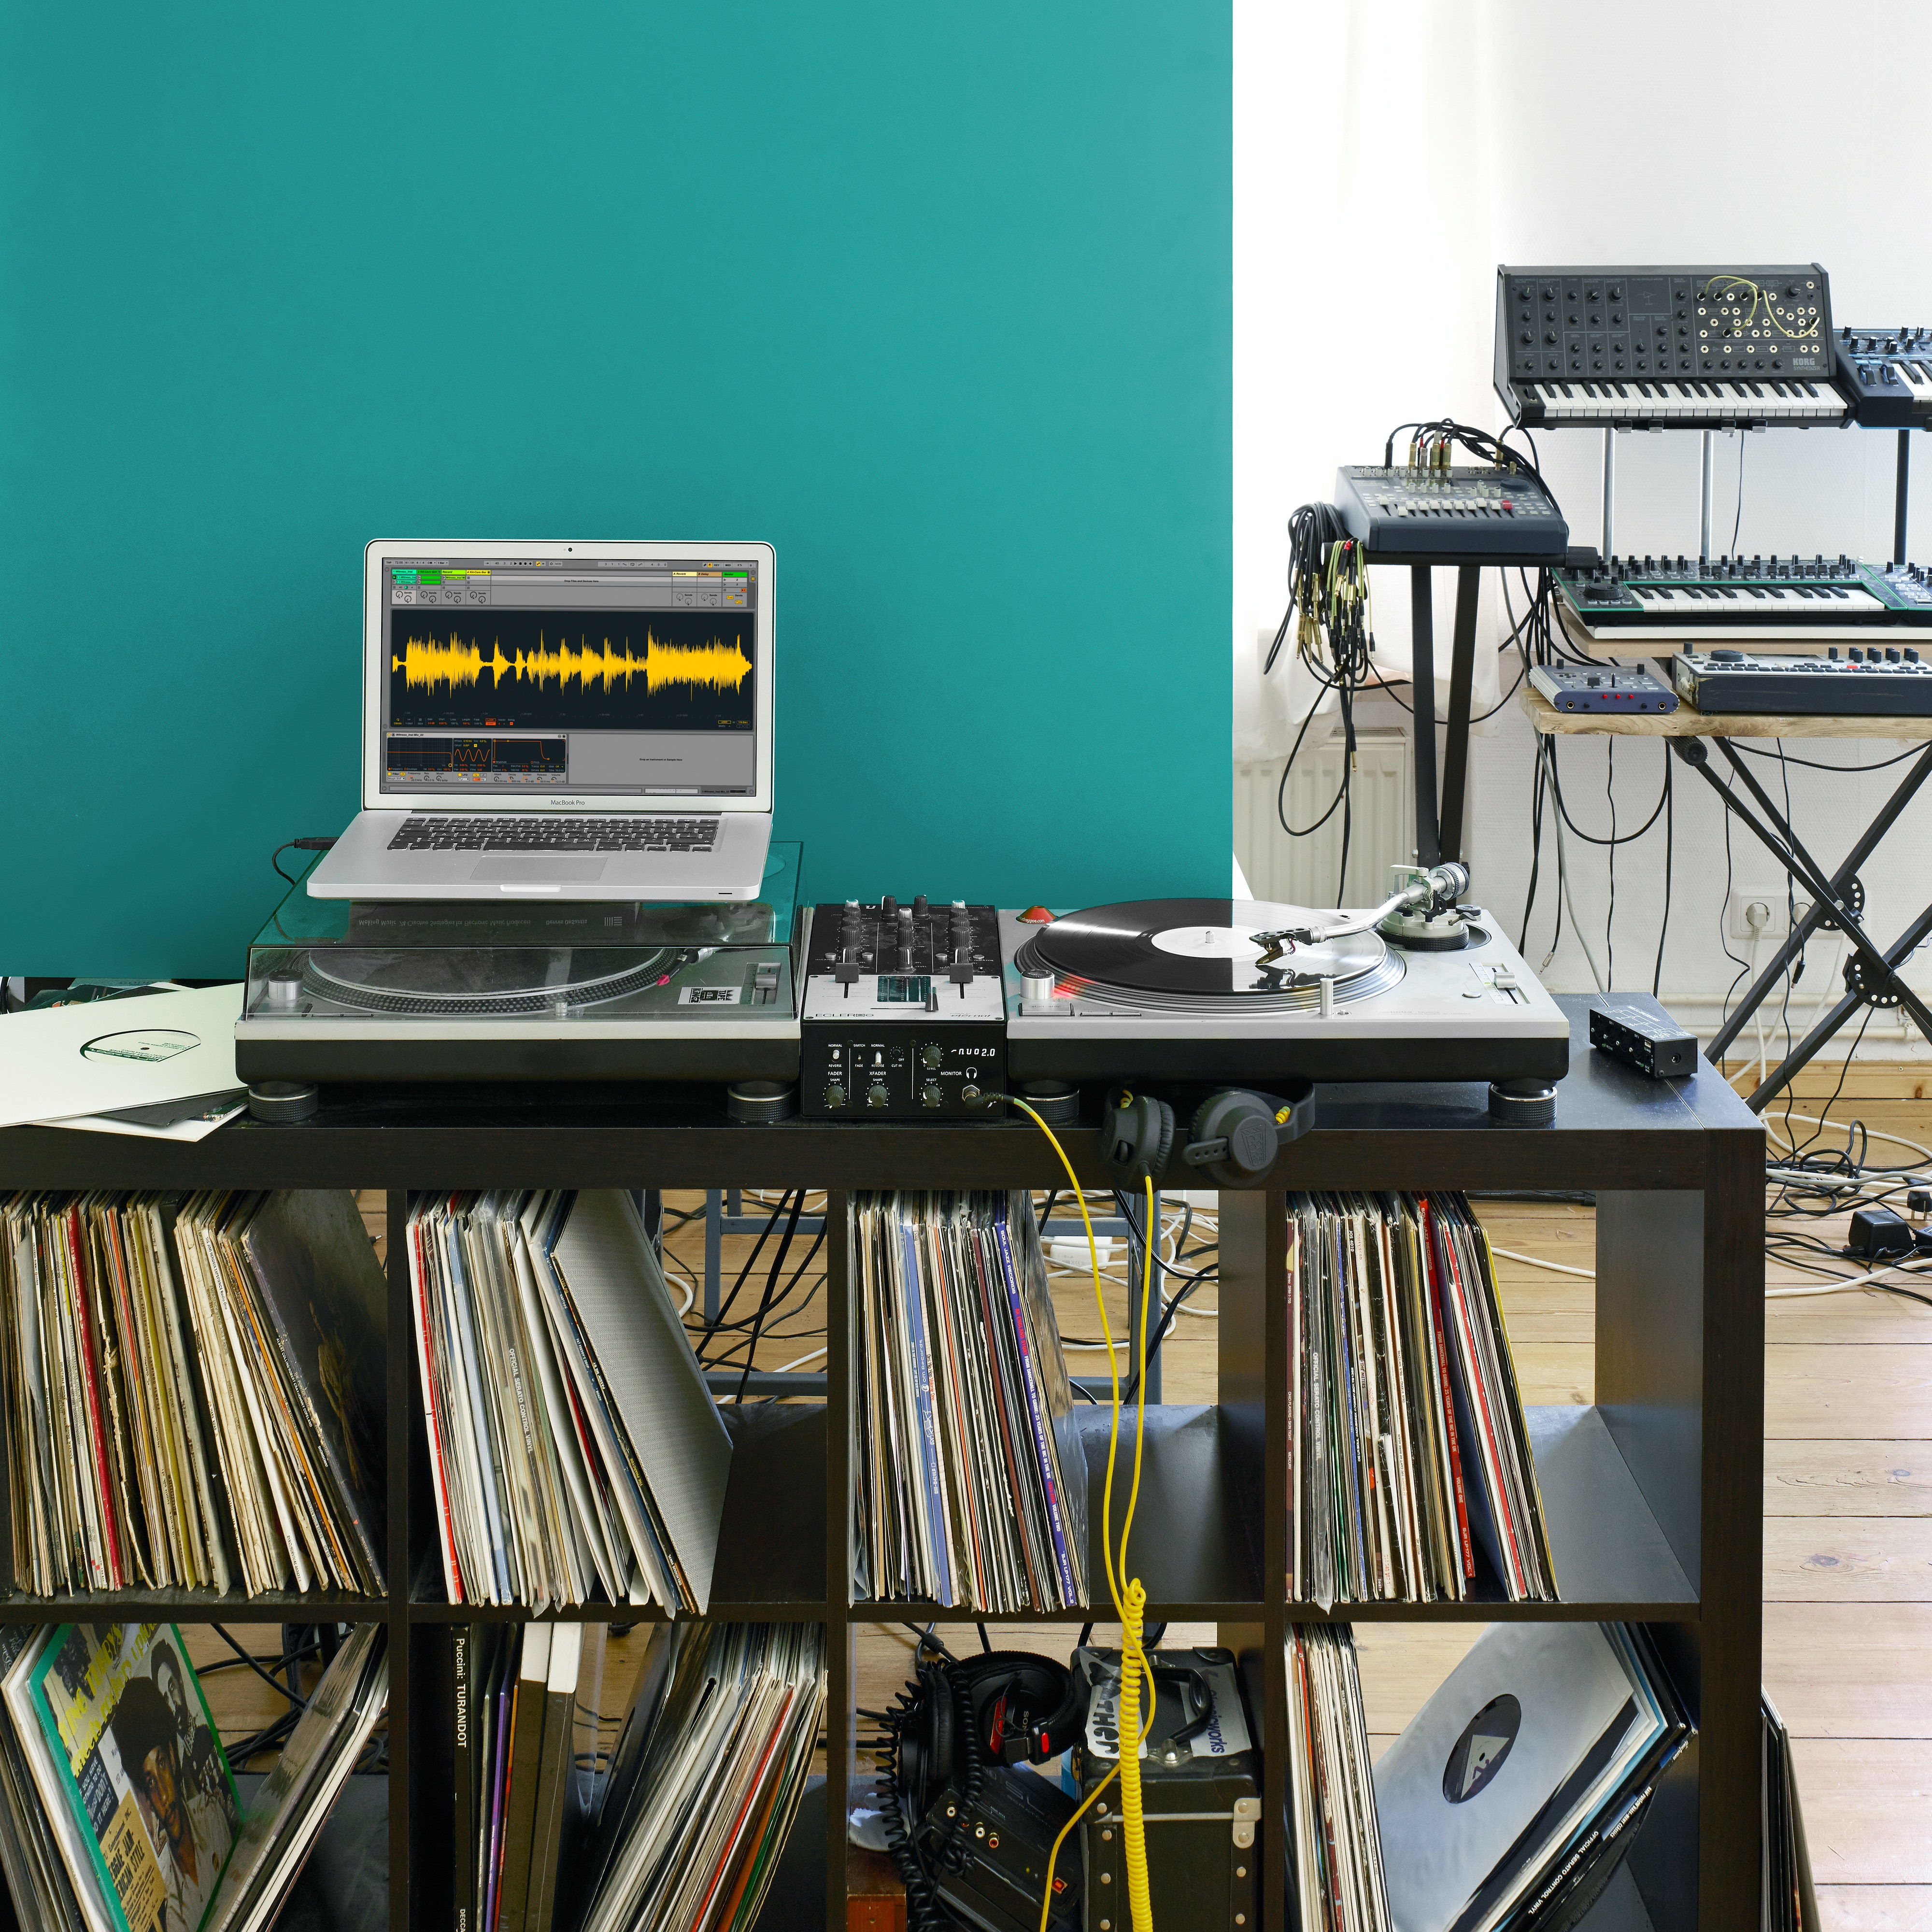 Ableton live 9.0.2 x32 30 gbs of live packs pattch delta s